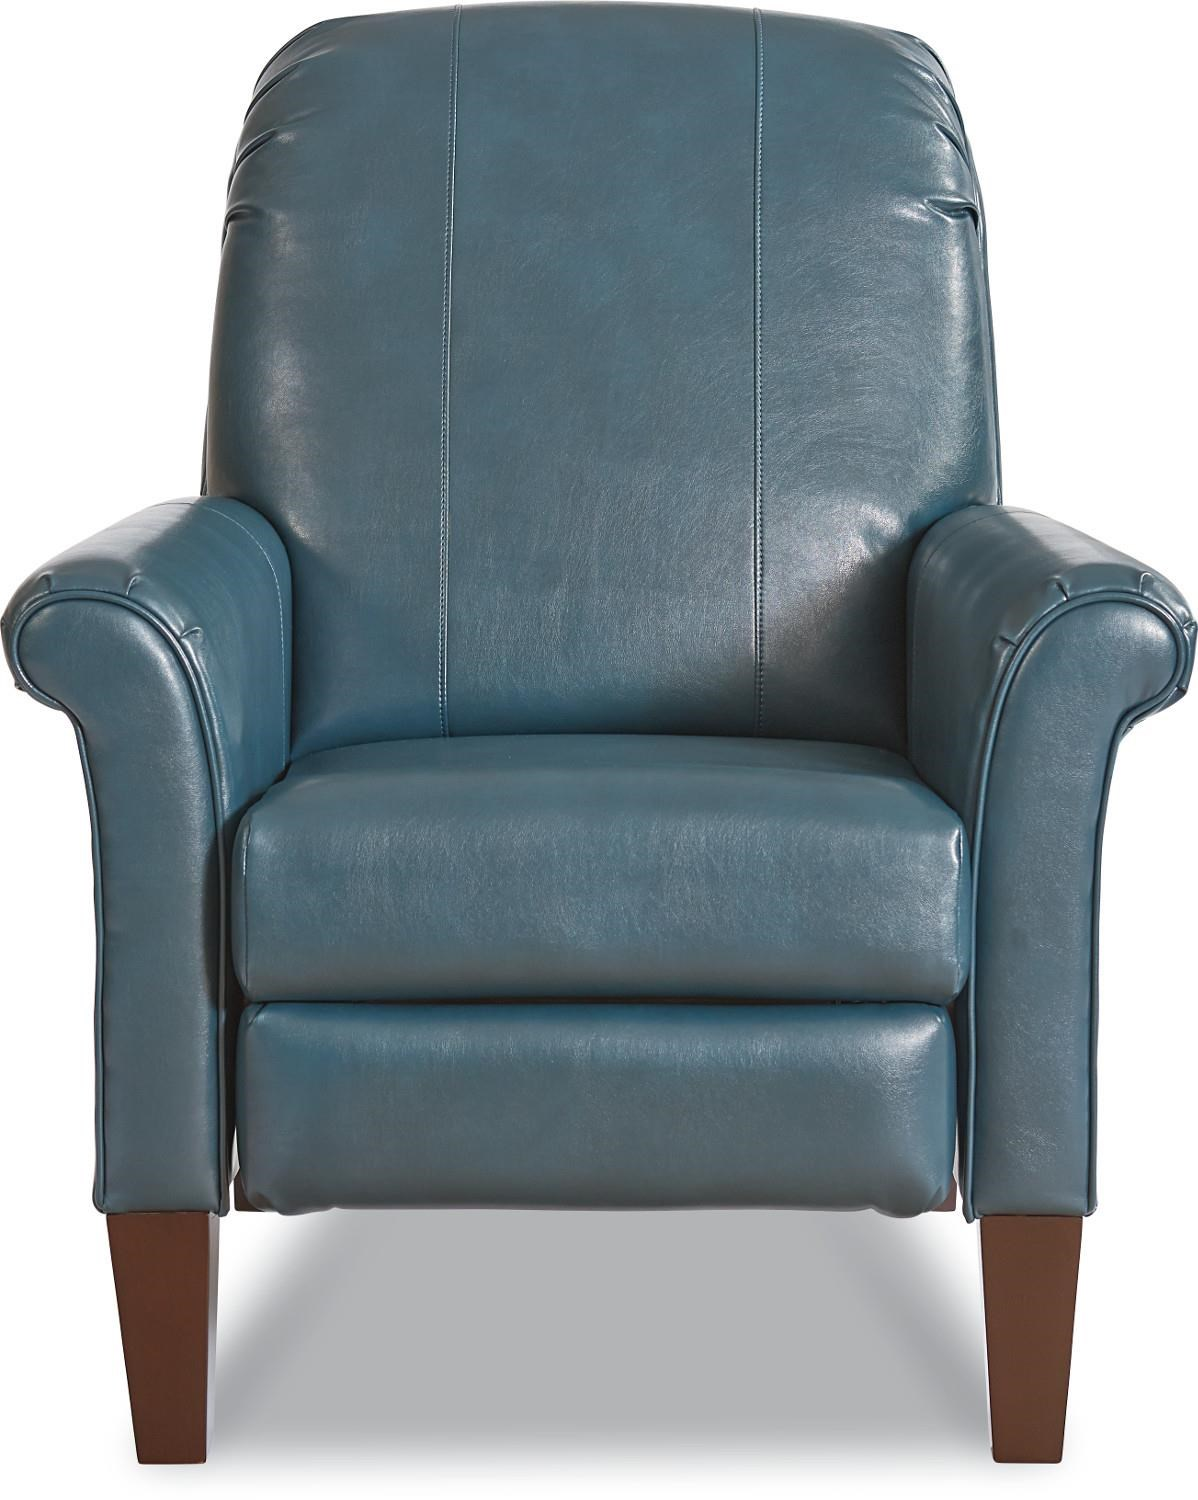 La Z Boy Recliners Fletcher Recliner, Hi Leg Recliner   Conlinu0027s Furniture    High Leg Recliners